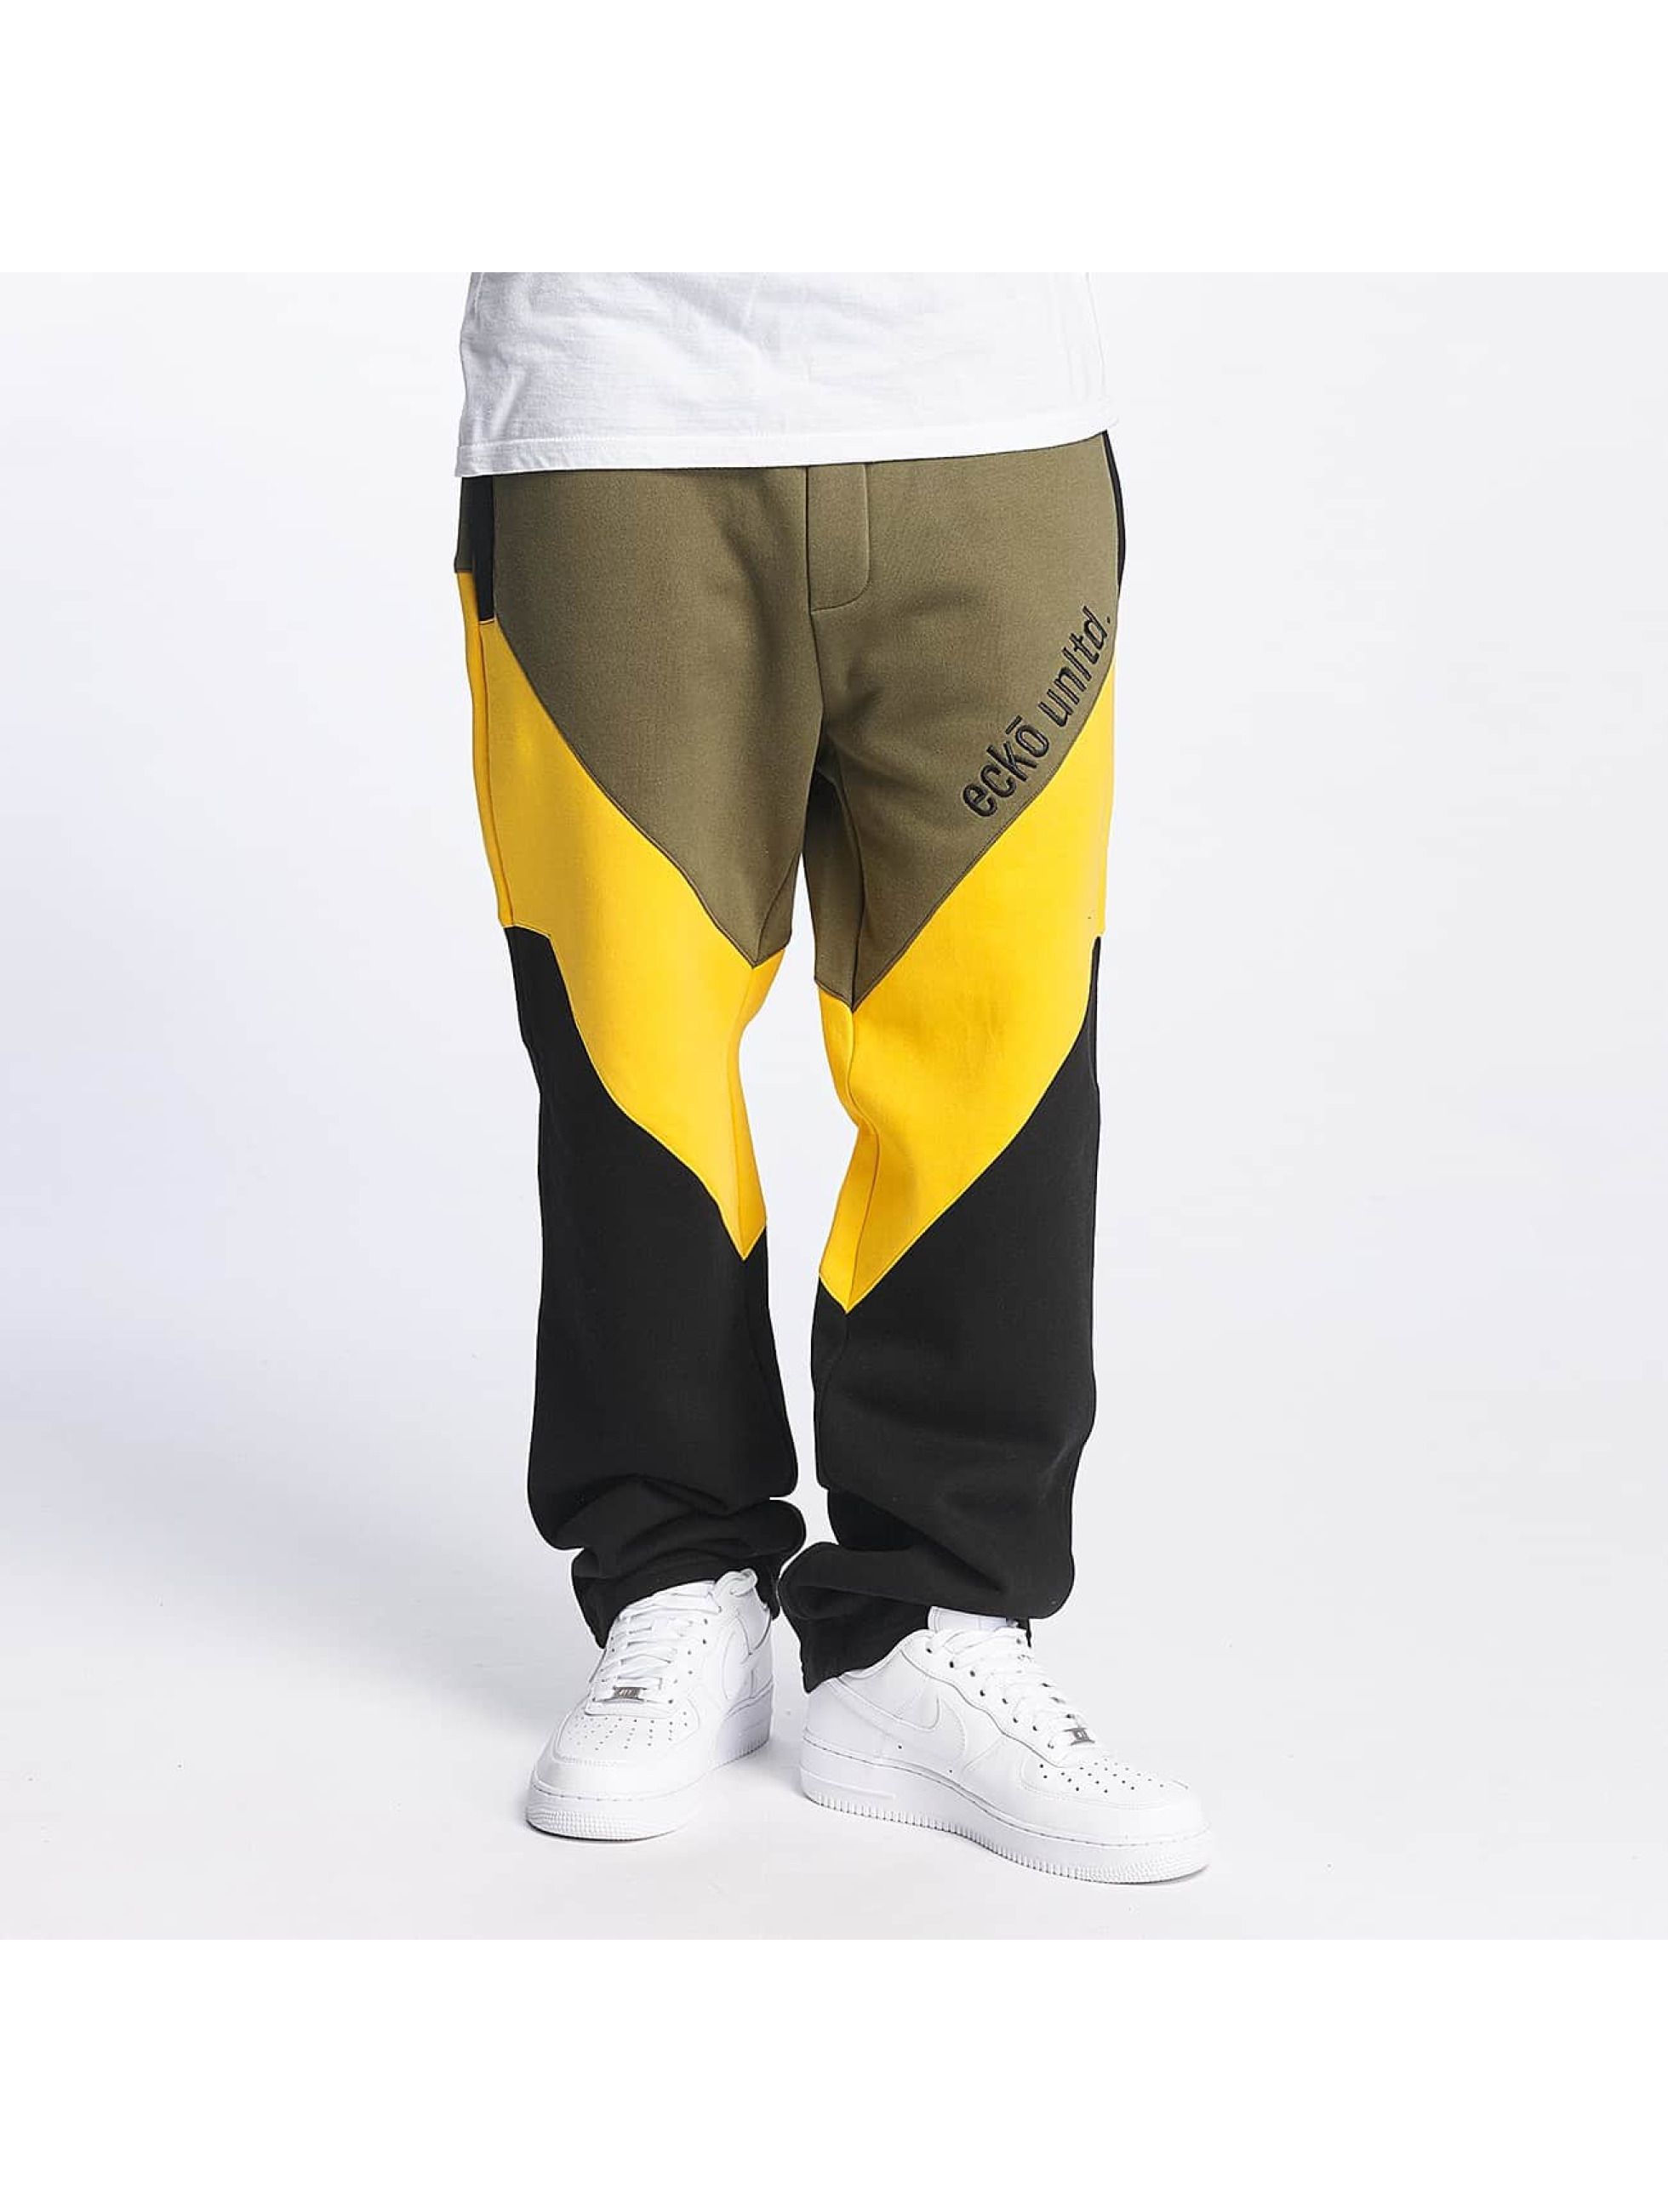 Ecko Unltd. Flashback Sweatpants Olive